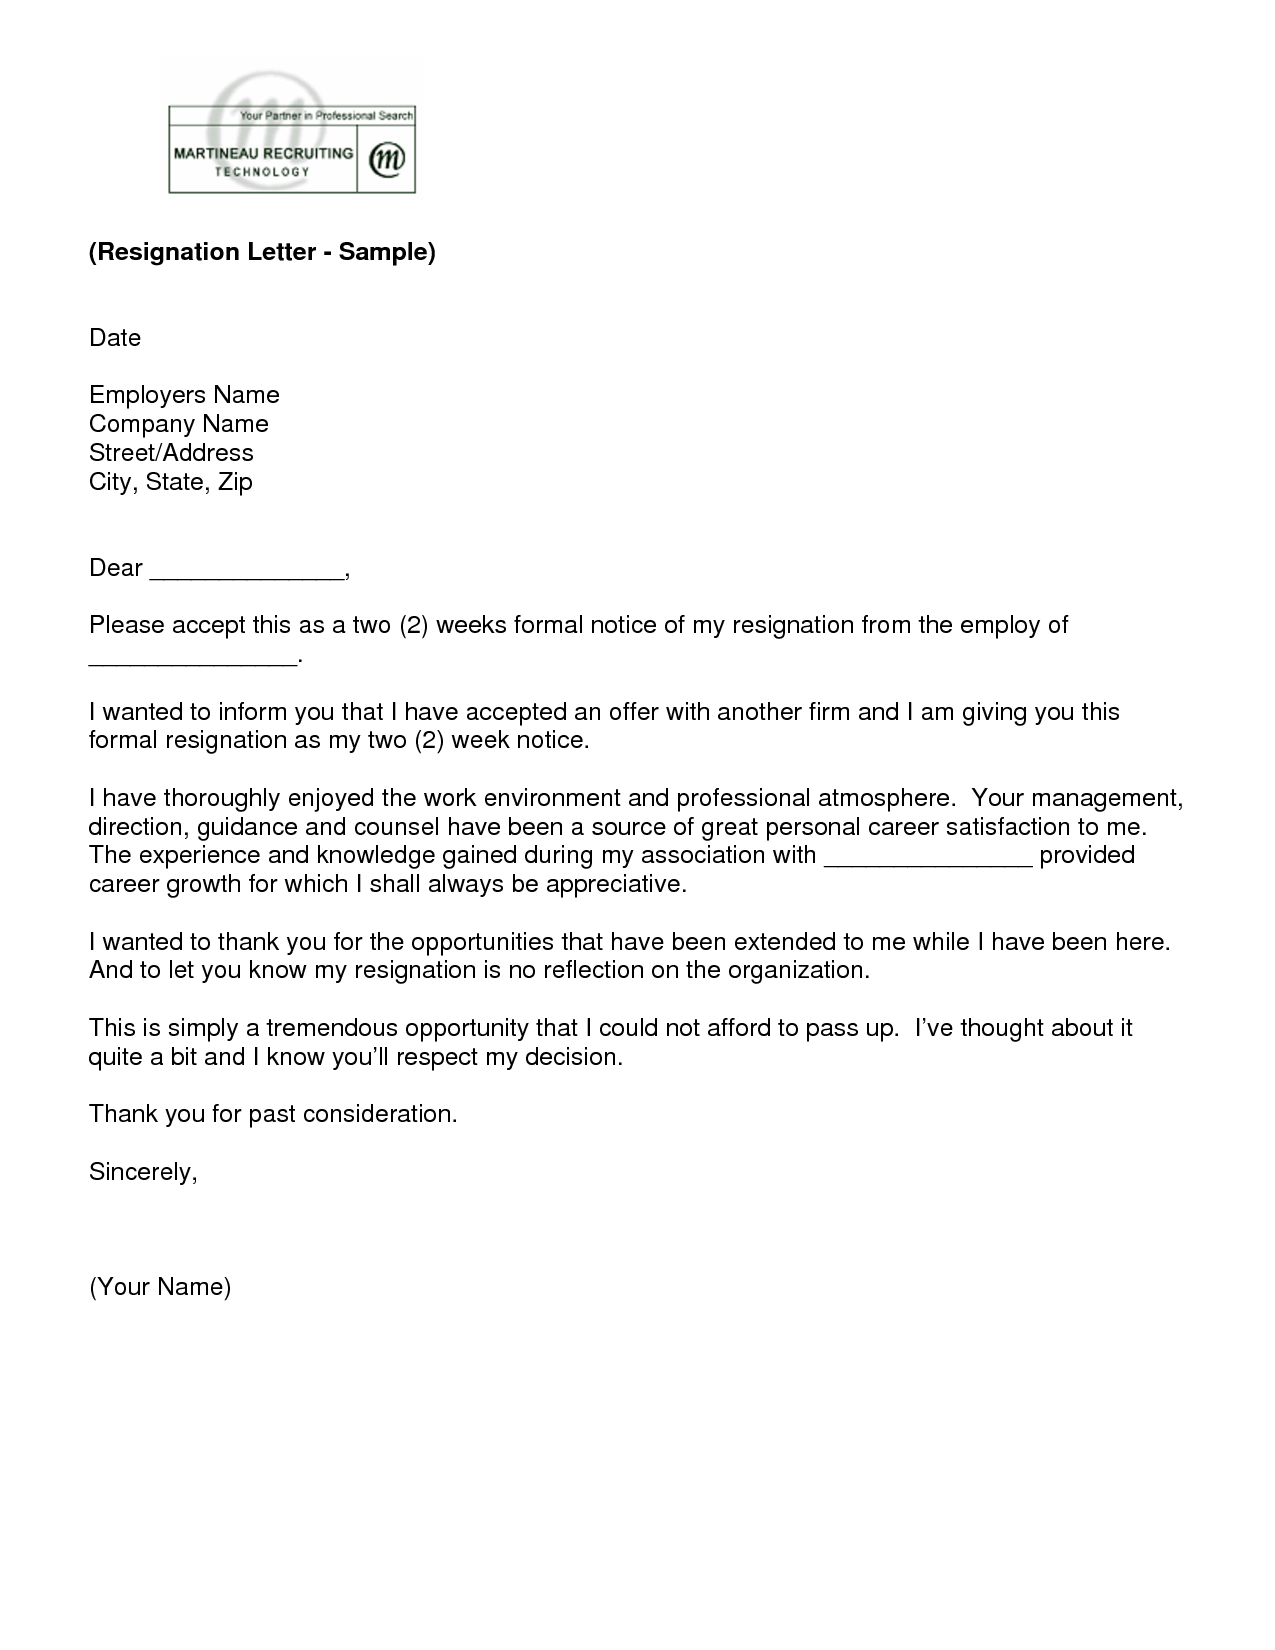 Letter of resignation 2 weeks notice template ew adulthood letter of resignation 2 weeks notice template thecheapjerseys Images